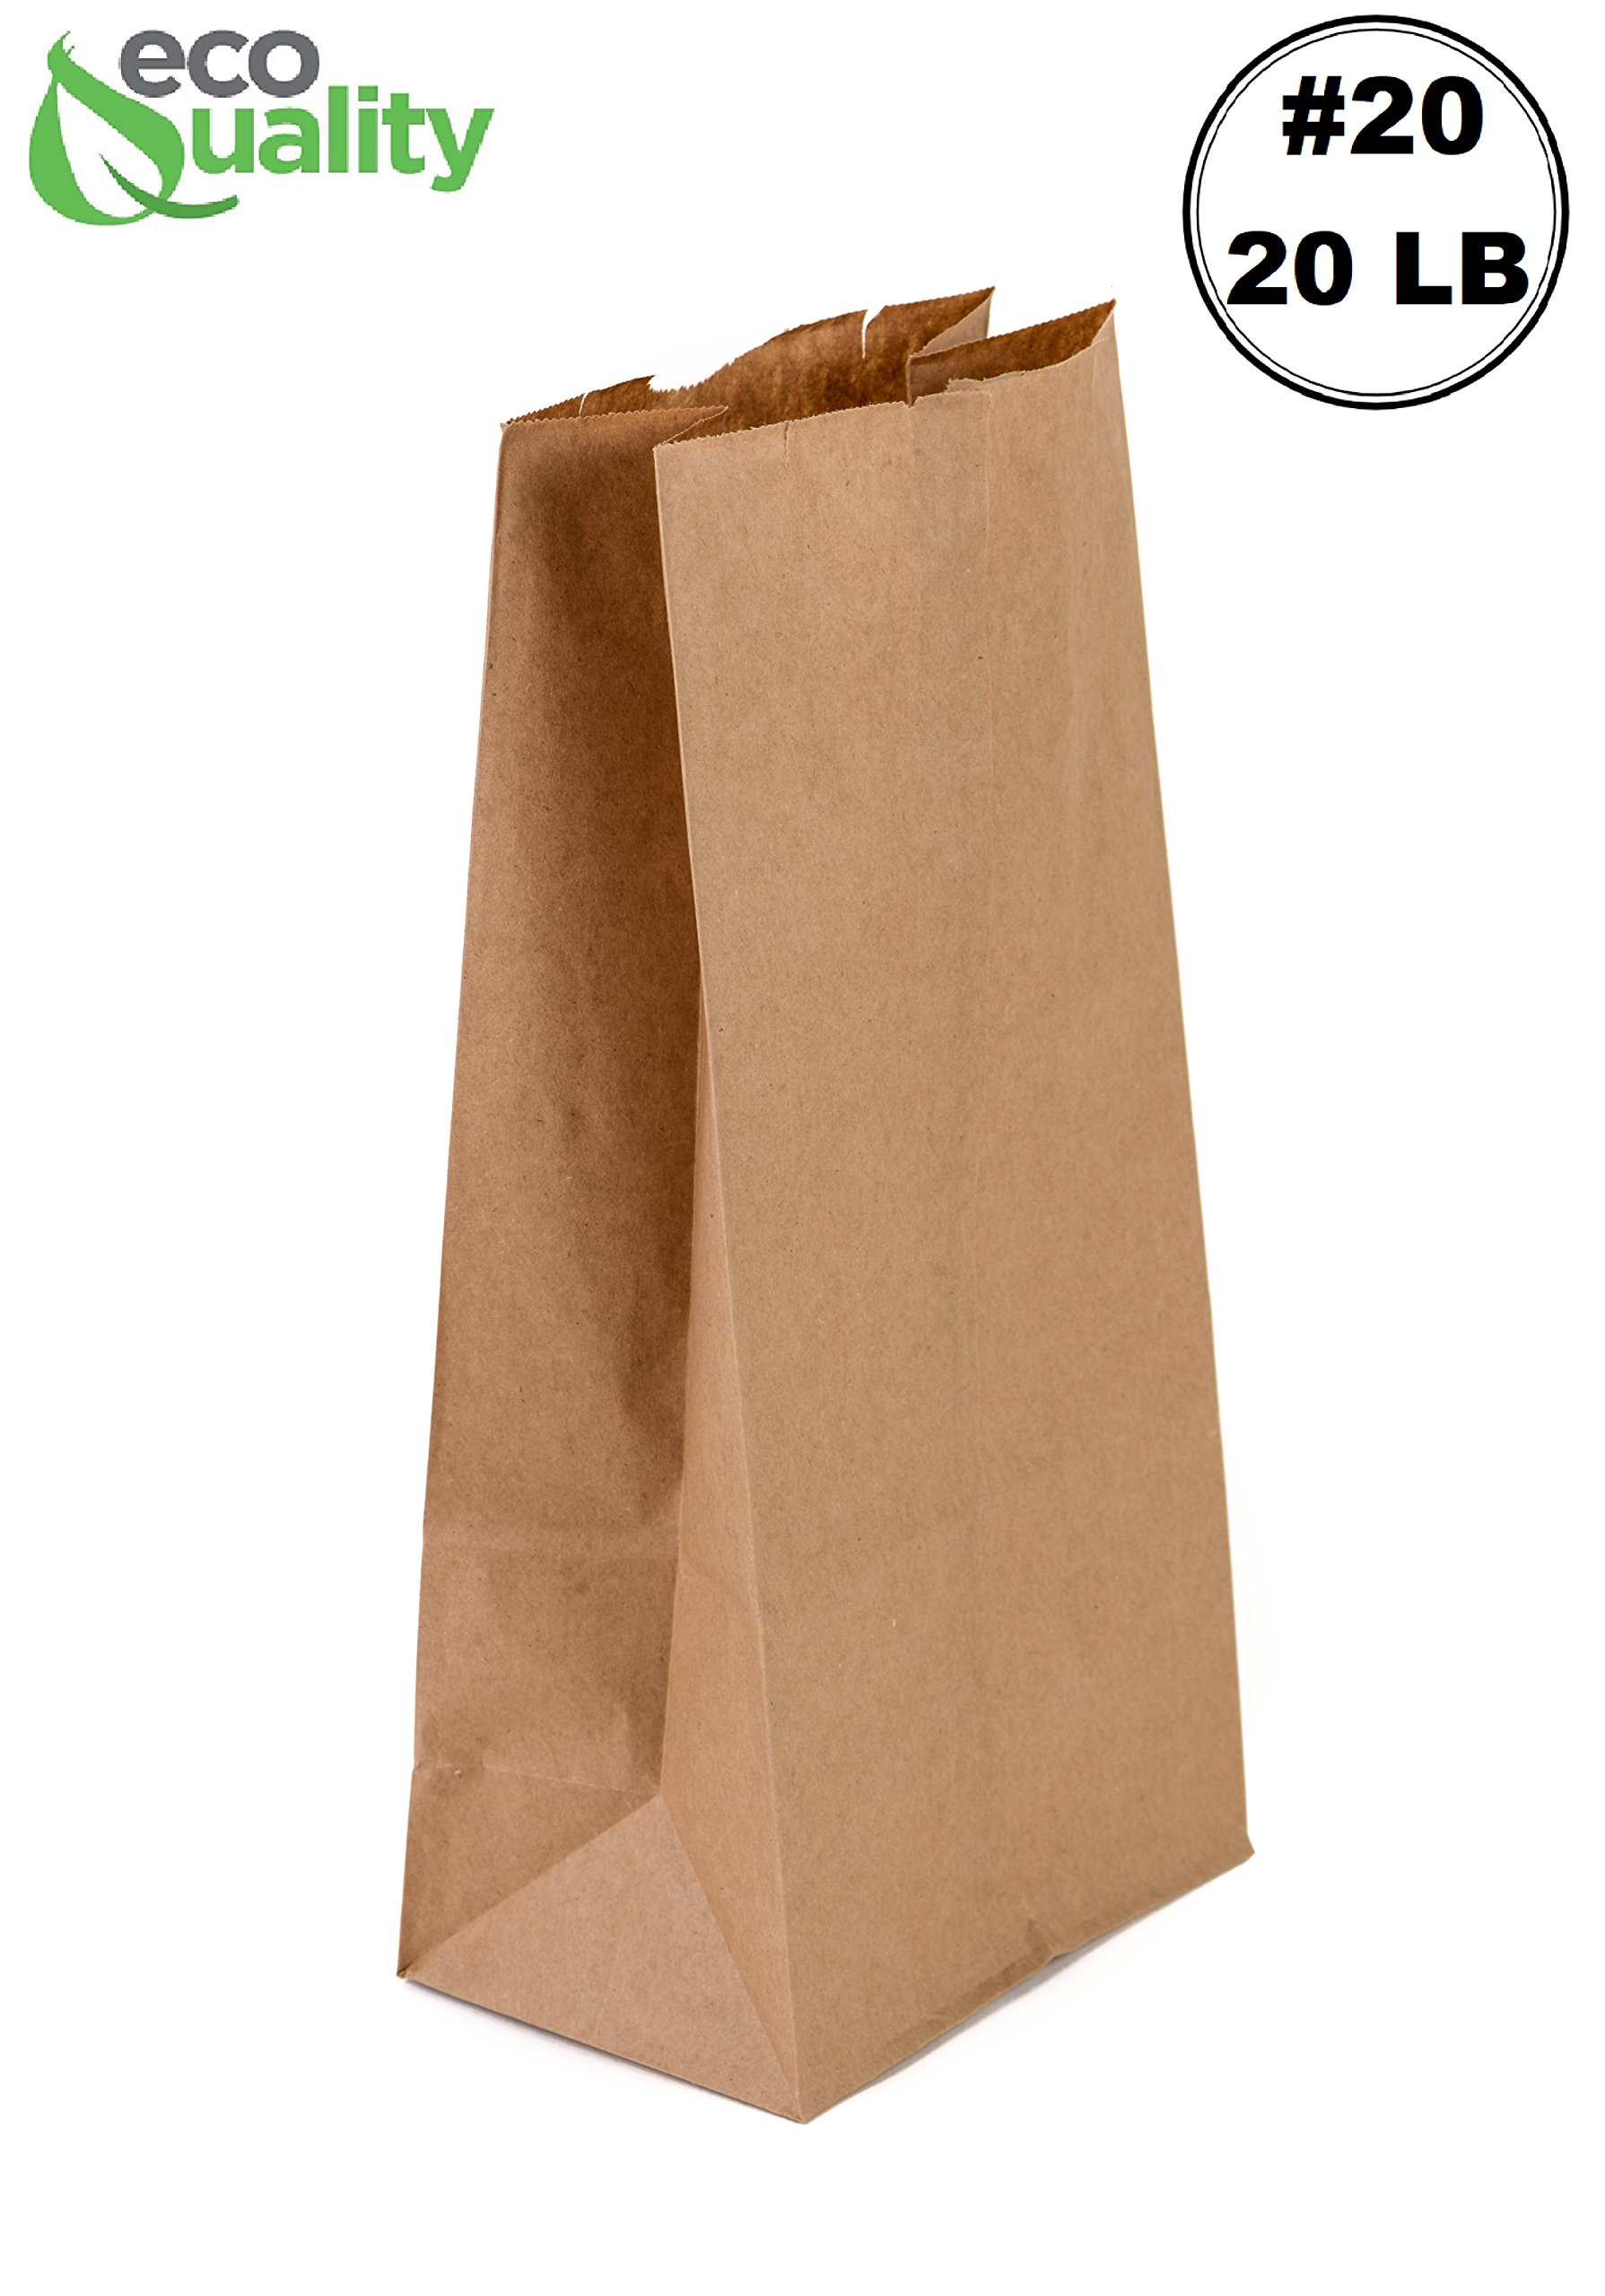 EcoQuality 1000 Brown Kraft Paper Bag (20 lb) Large - Paper Lunch Bags, Small Snacks, Gift Bags, Grocery, Merchandise, Party Bags (16 x 8 x 5.5) (20 Pound Capacity)